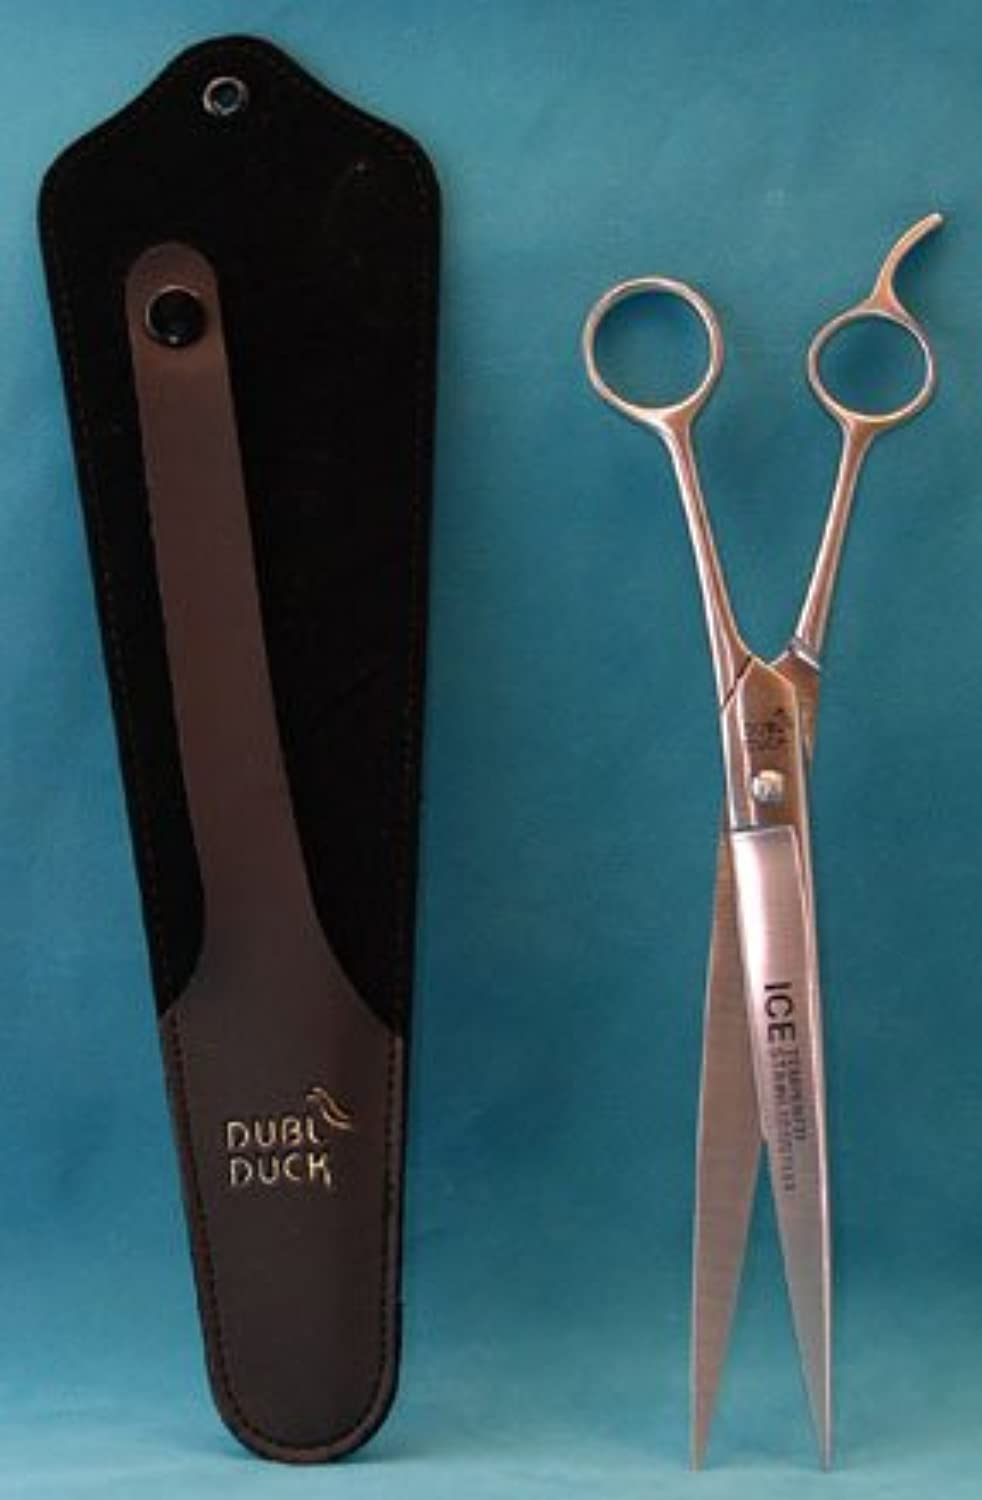 Dubl Duck Economy 10  Curved Dog Grooming Scissors